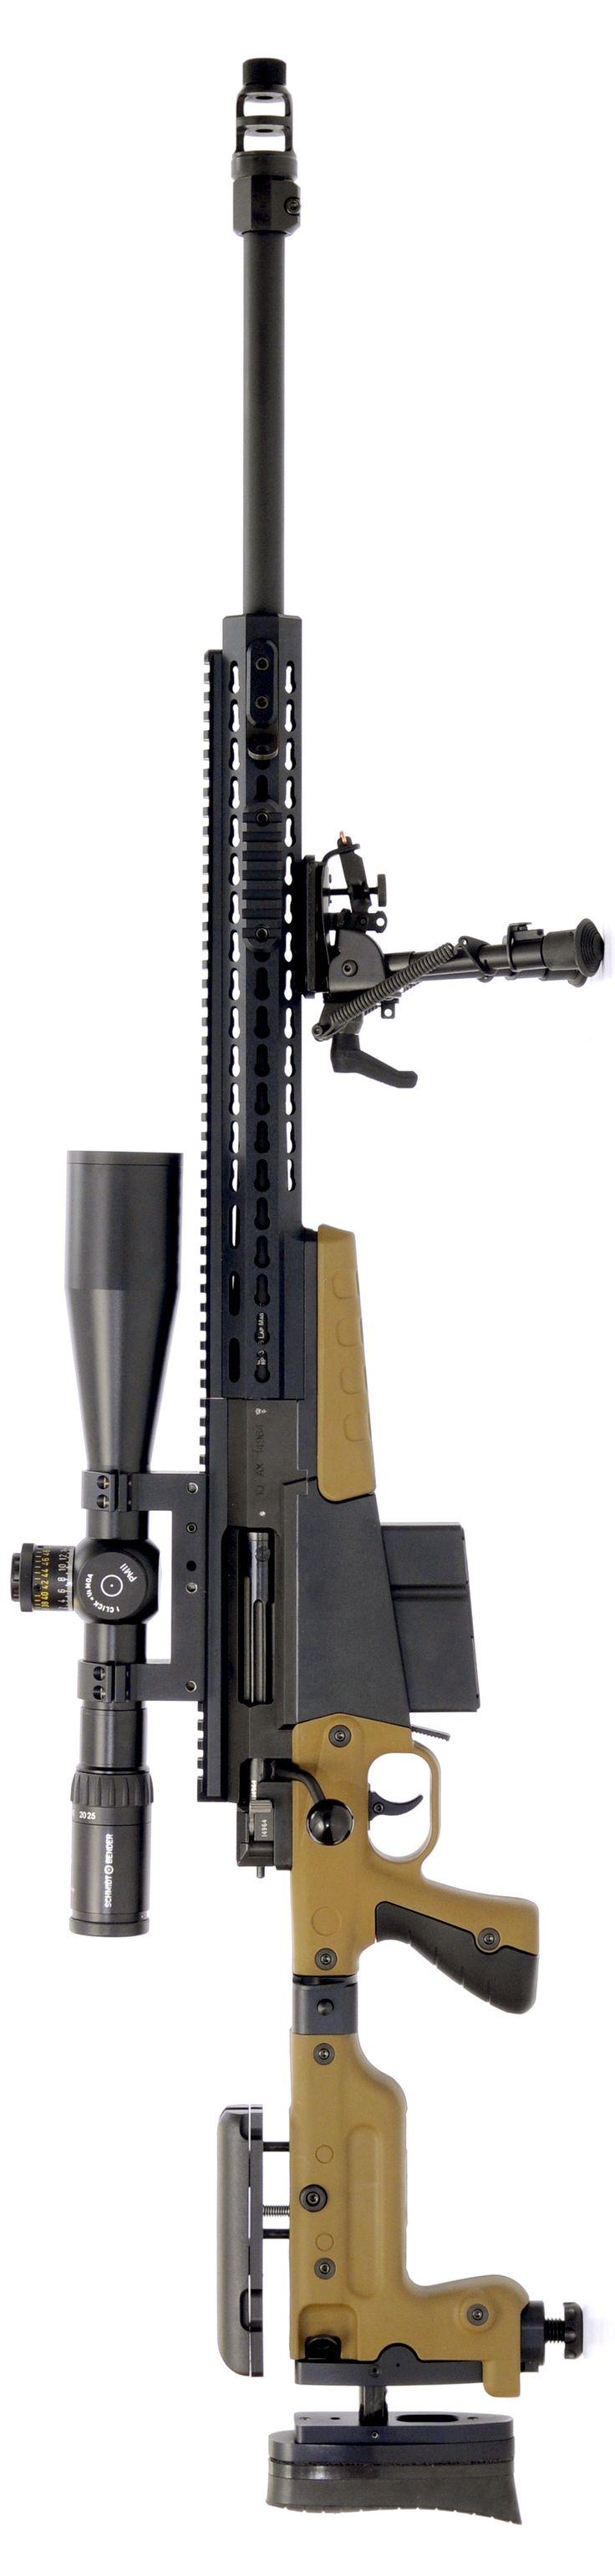 Accuracy International AX338 long range sniper rifle with folding chassis